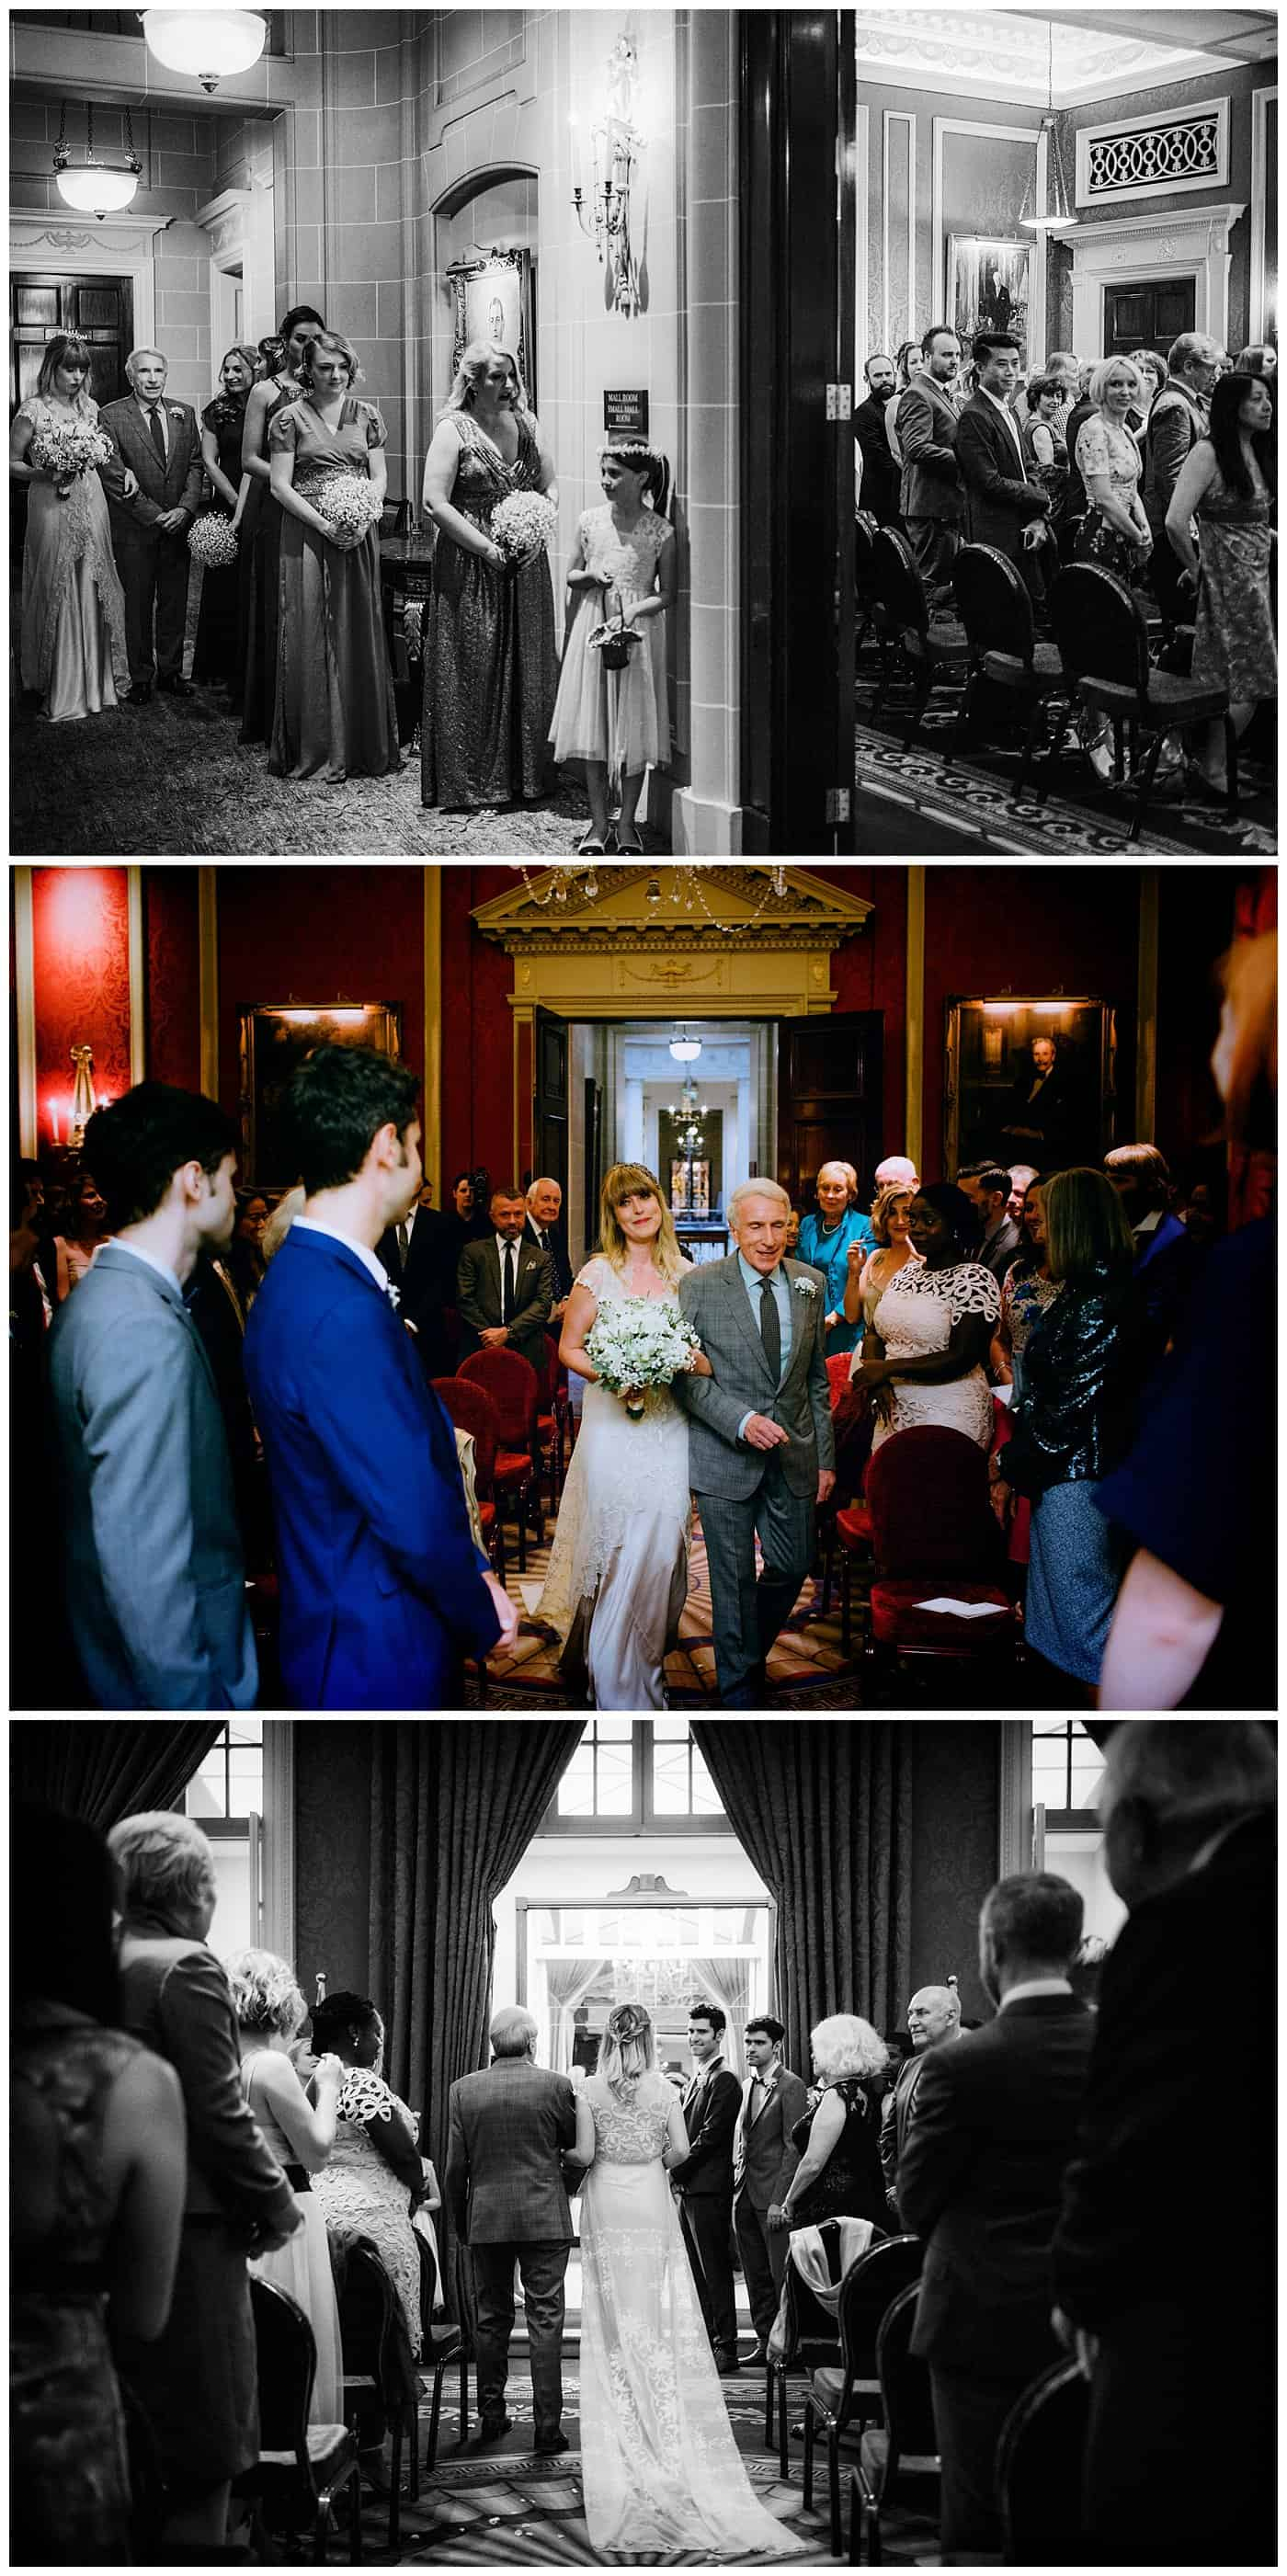 Wedding ceremony at royal automobile club London